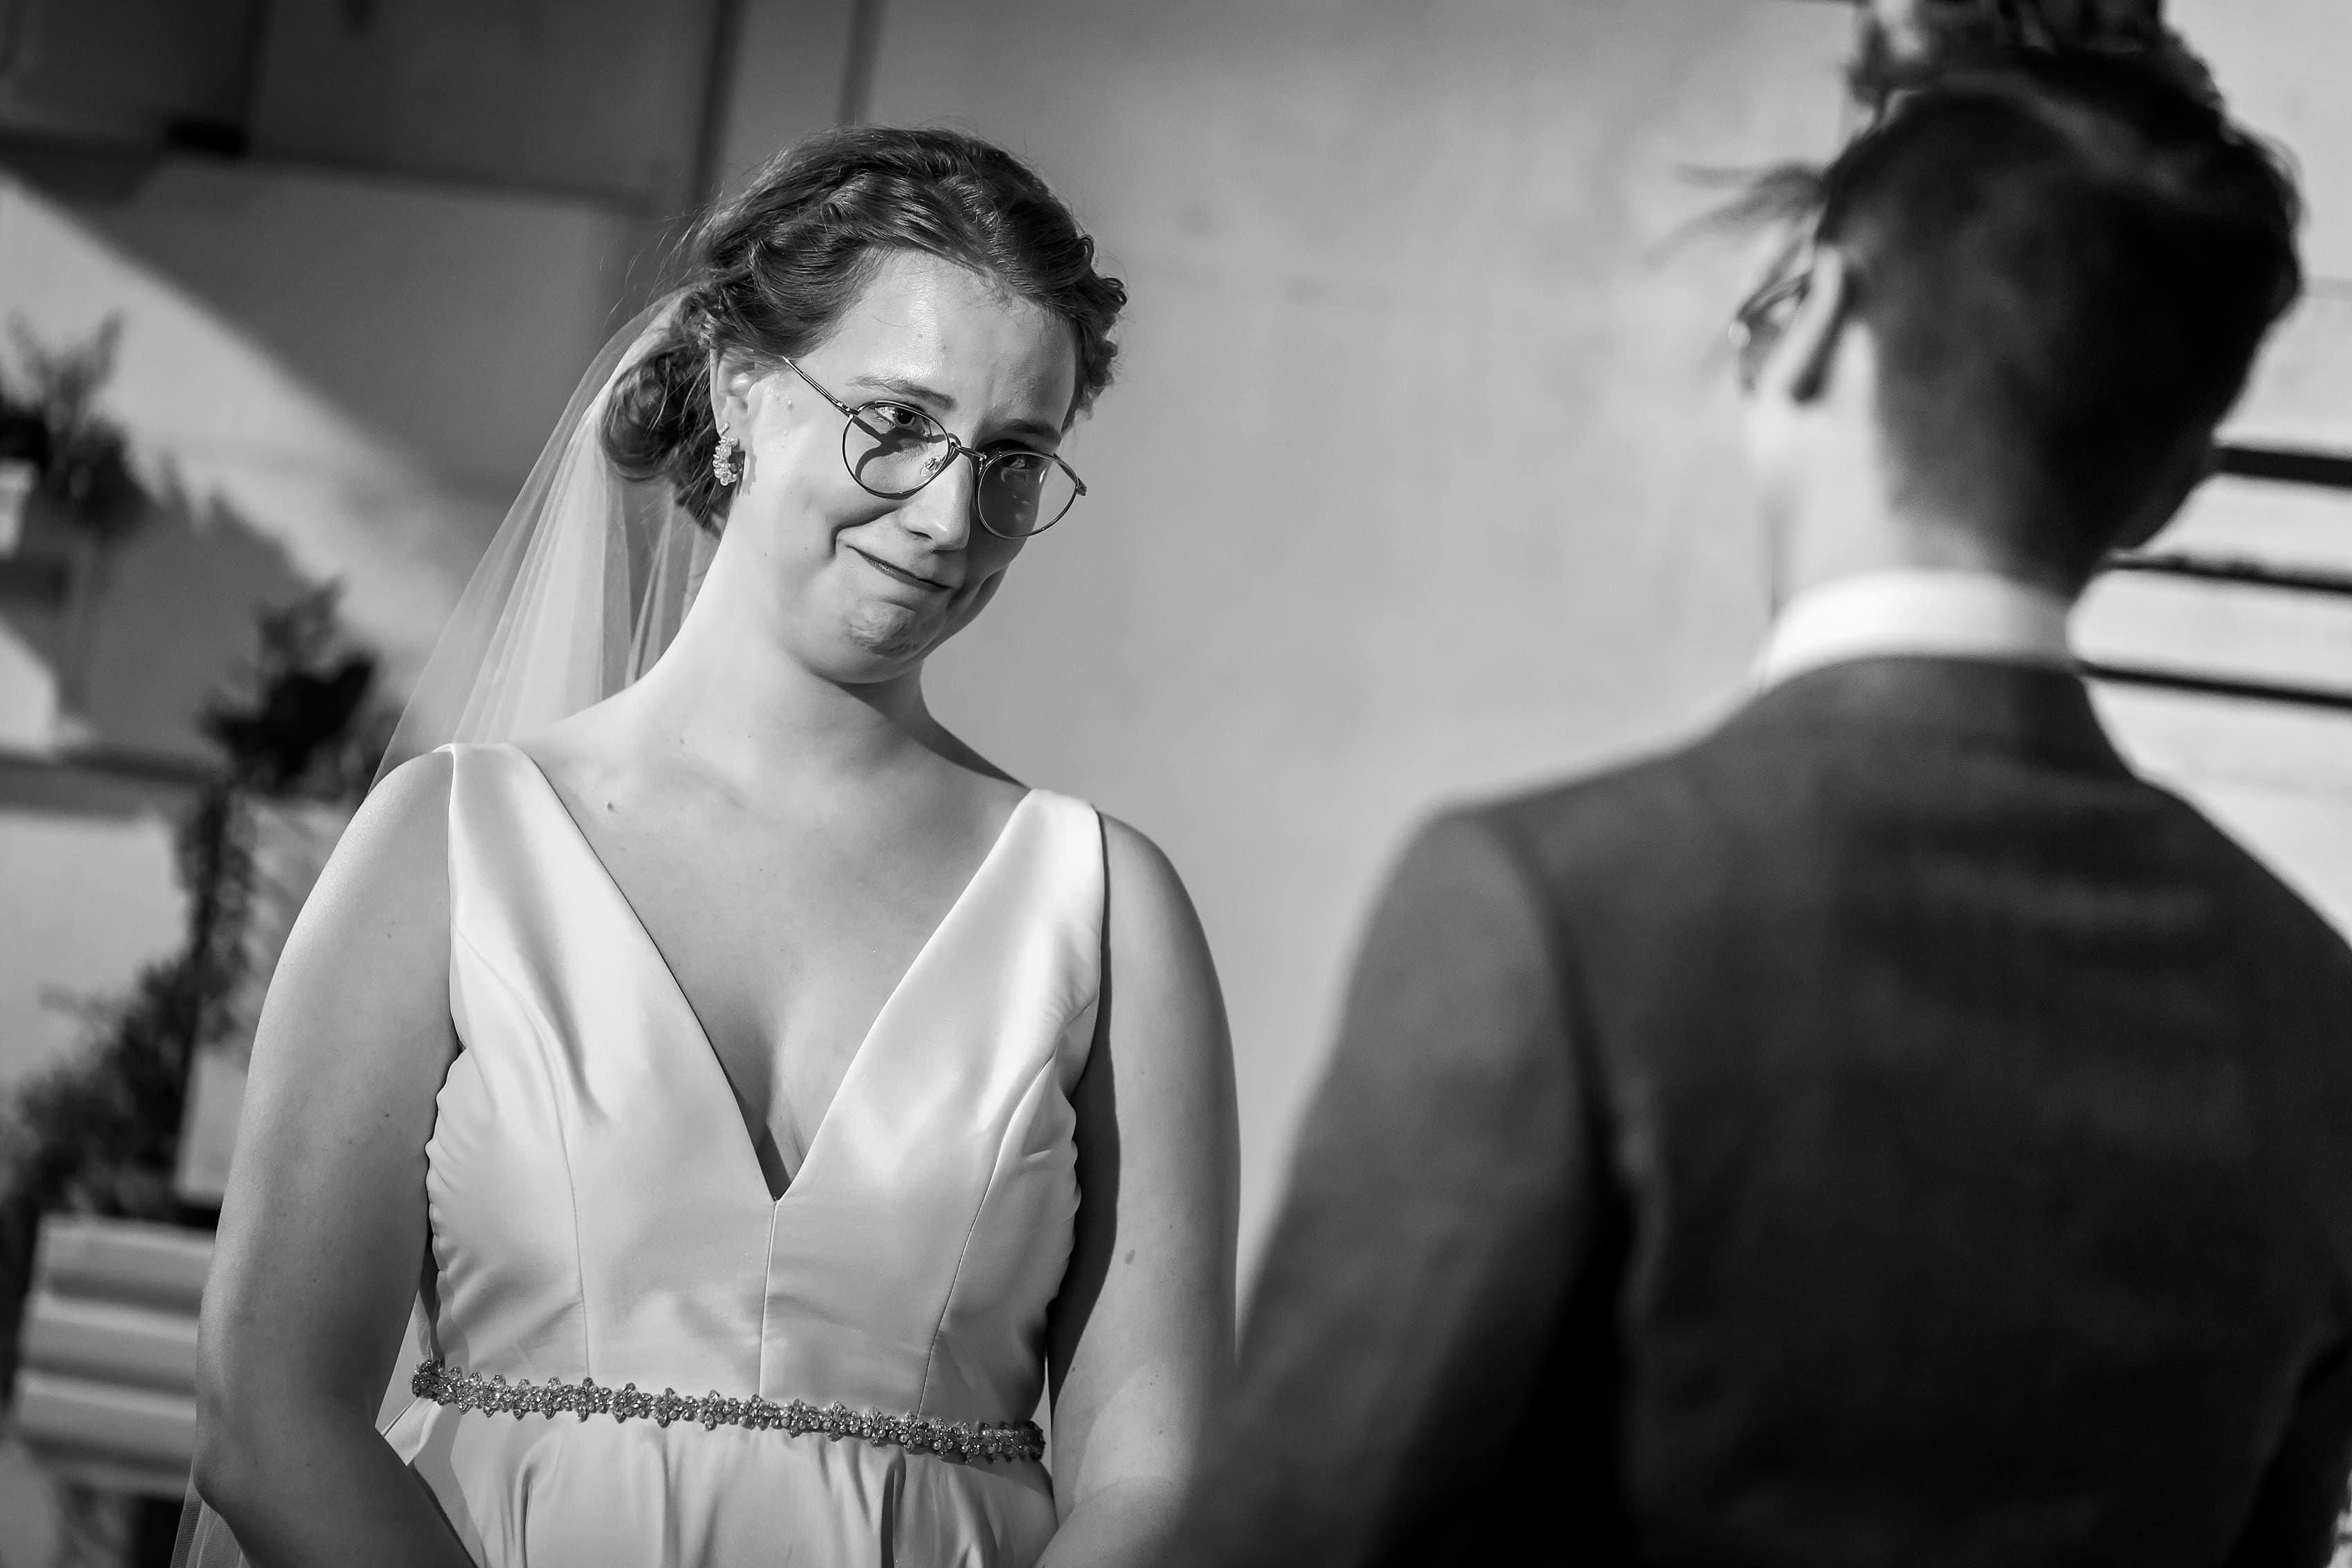 bride reaction during wedding ceremony at Rust Belt Market in downtown Ferndale, Michigan